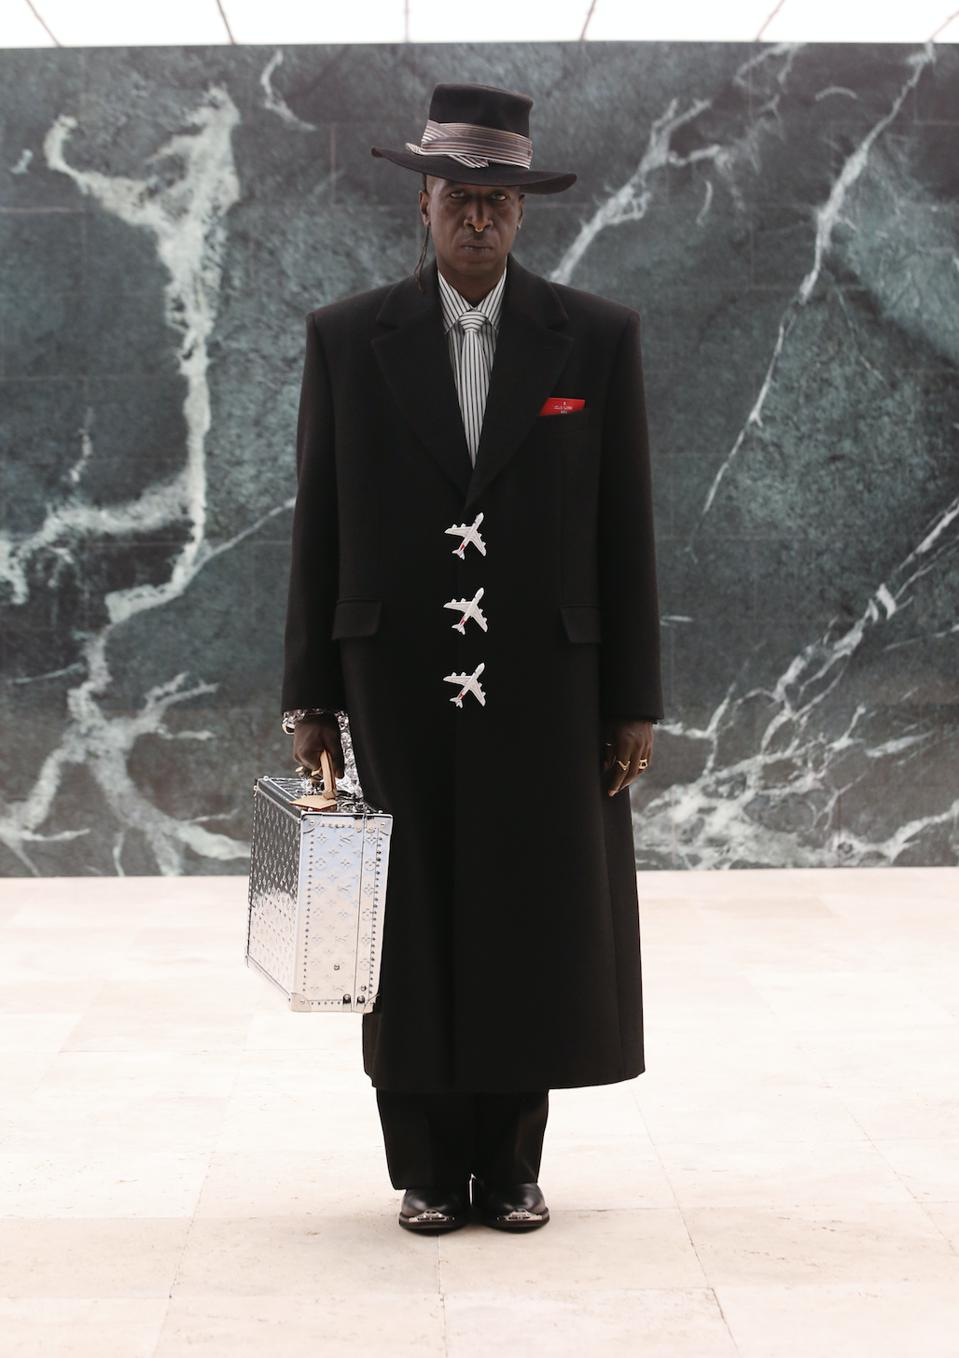 Saul Williams the American rapper, singer, songwriter, musician, poet, writer, and actor opened the Louis Vuitton show portraying James Baldwin.